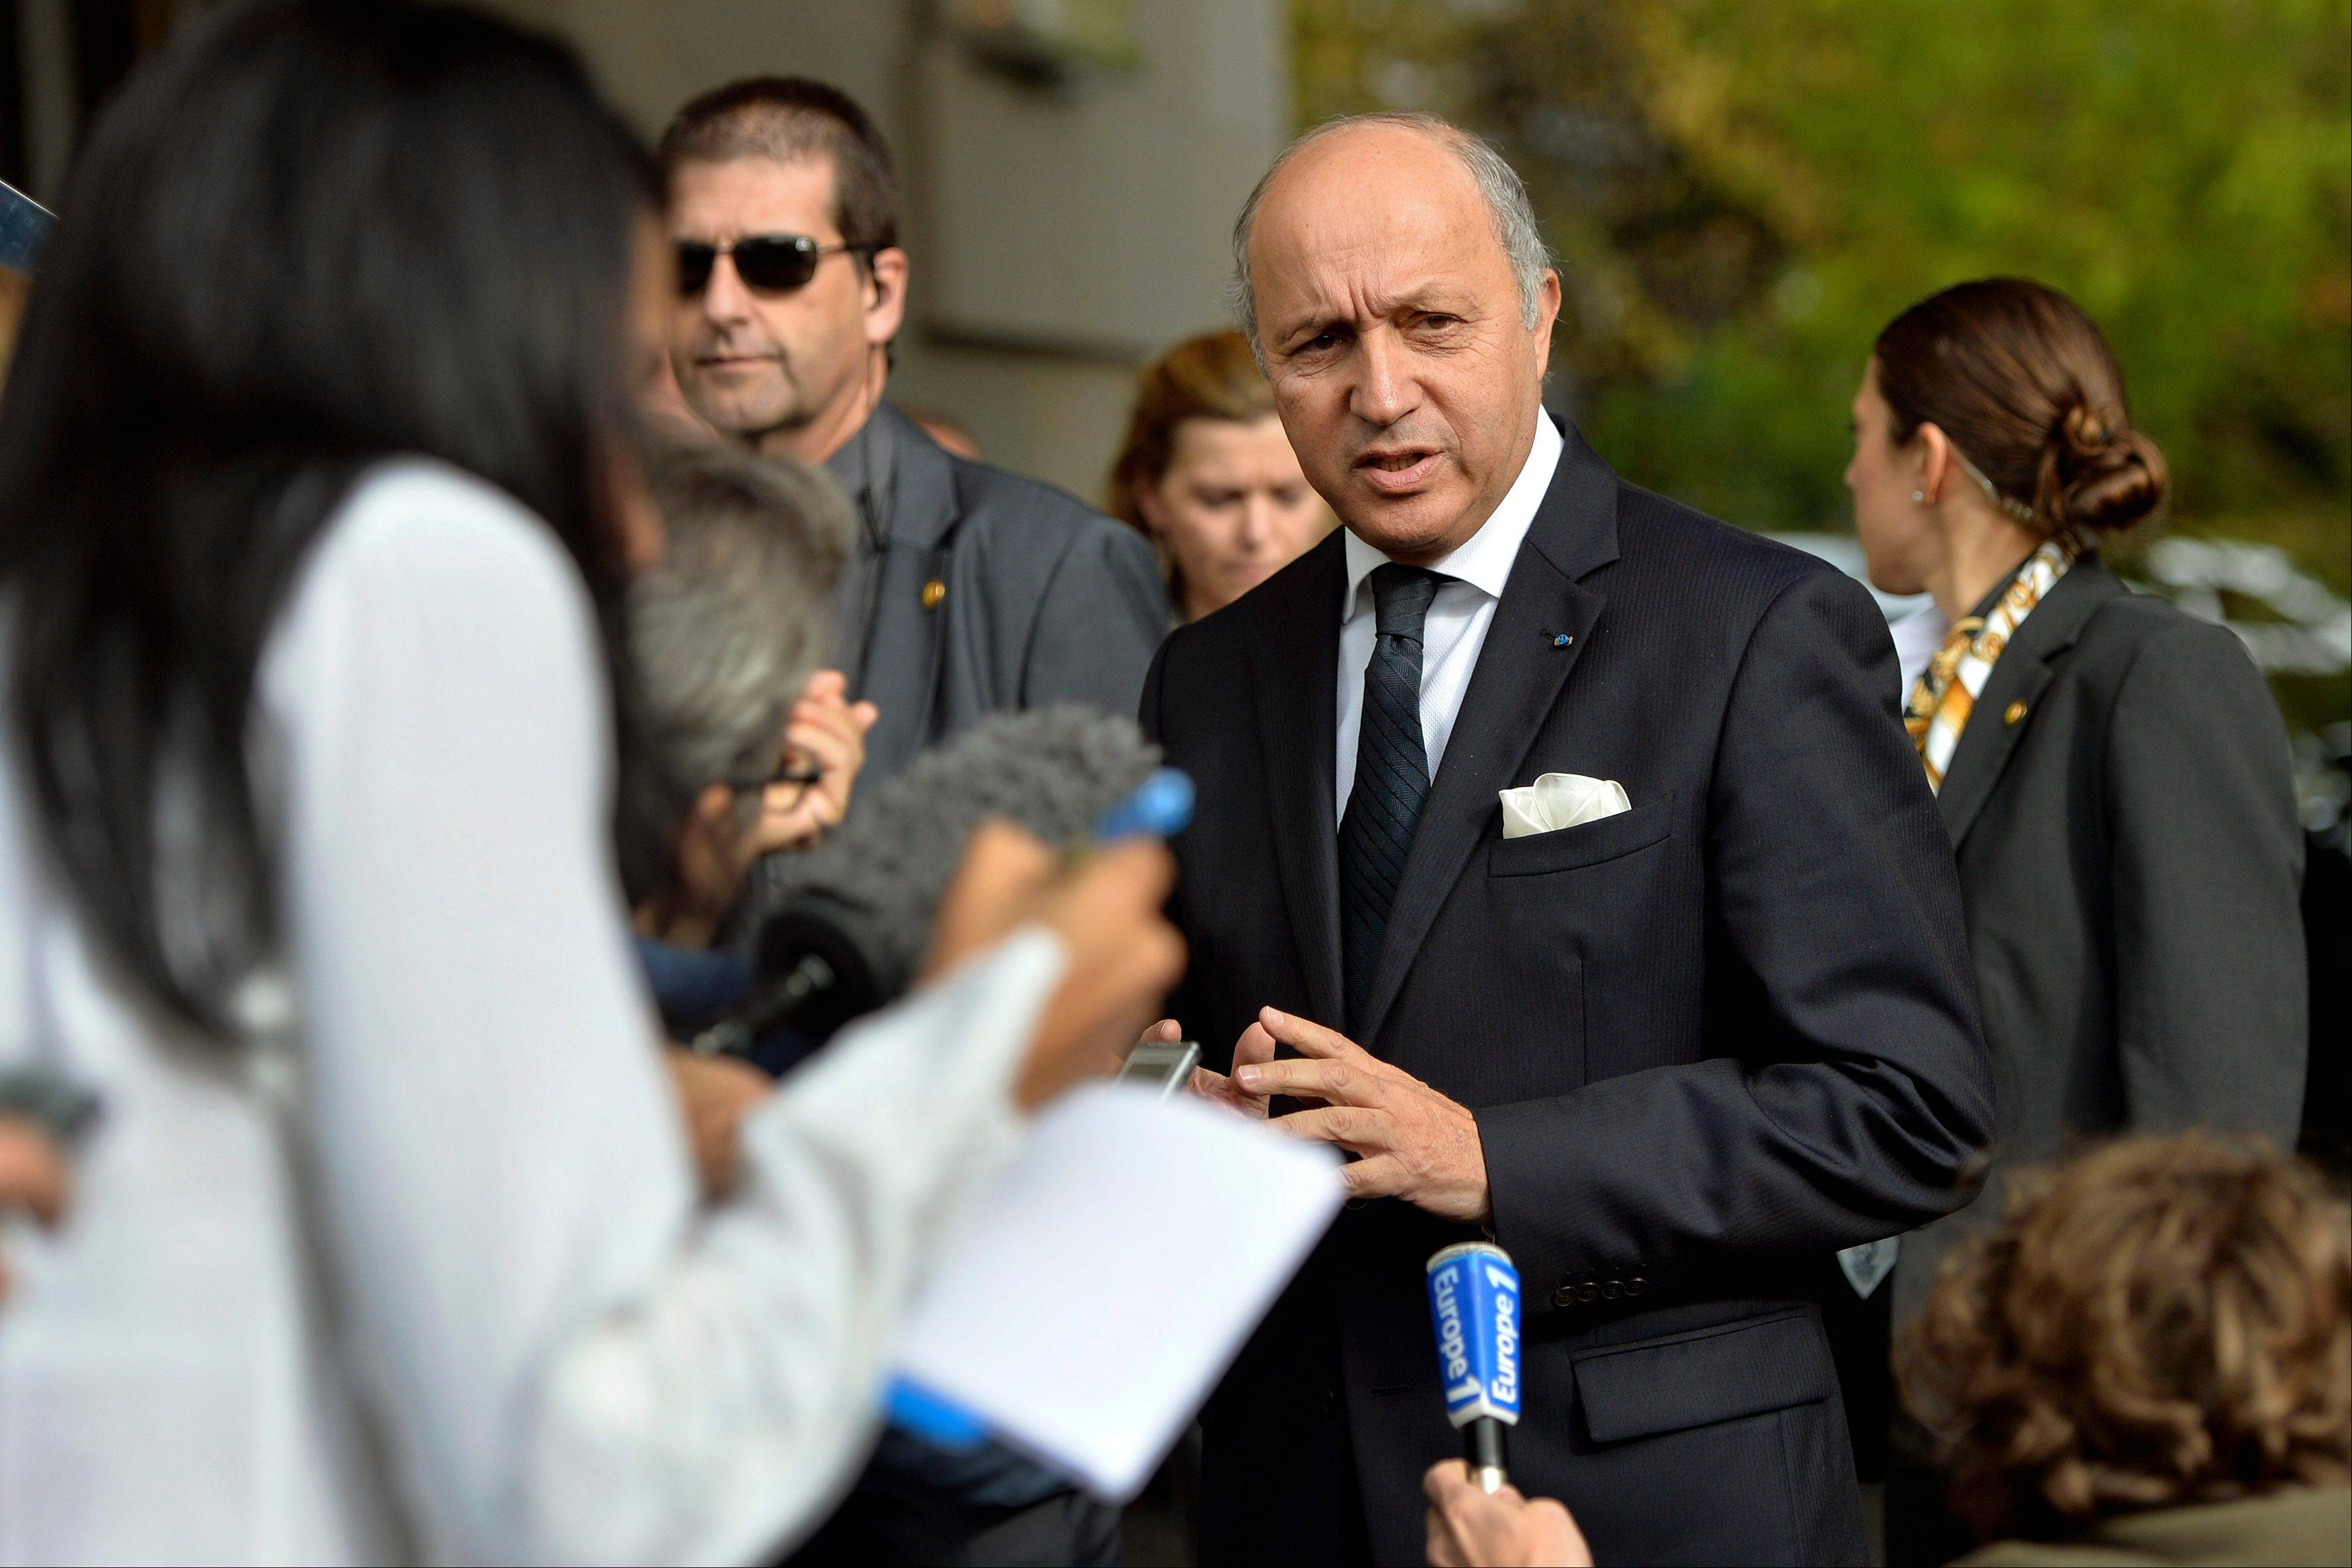 "French foreign minister Laurent Fabius, center, arrives Friday for the second day of closed-door nuclear talks at the United Nations offices in Geneva, Switzerland. Four world powers are dispatching their top diplomats to Geneva on Friday to add their weight to negotiations aimed at putting initial limits on Iran's ability to make atomic weapons. French, British and German foreign ministers are joining U.S. secretary of state John Kerry in Geneva, who will be coming ""to help narrow differences in negotiations,"" according to a U.S. official who spoke on condition of anonymity because he was not authorized to release the information."